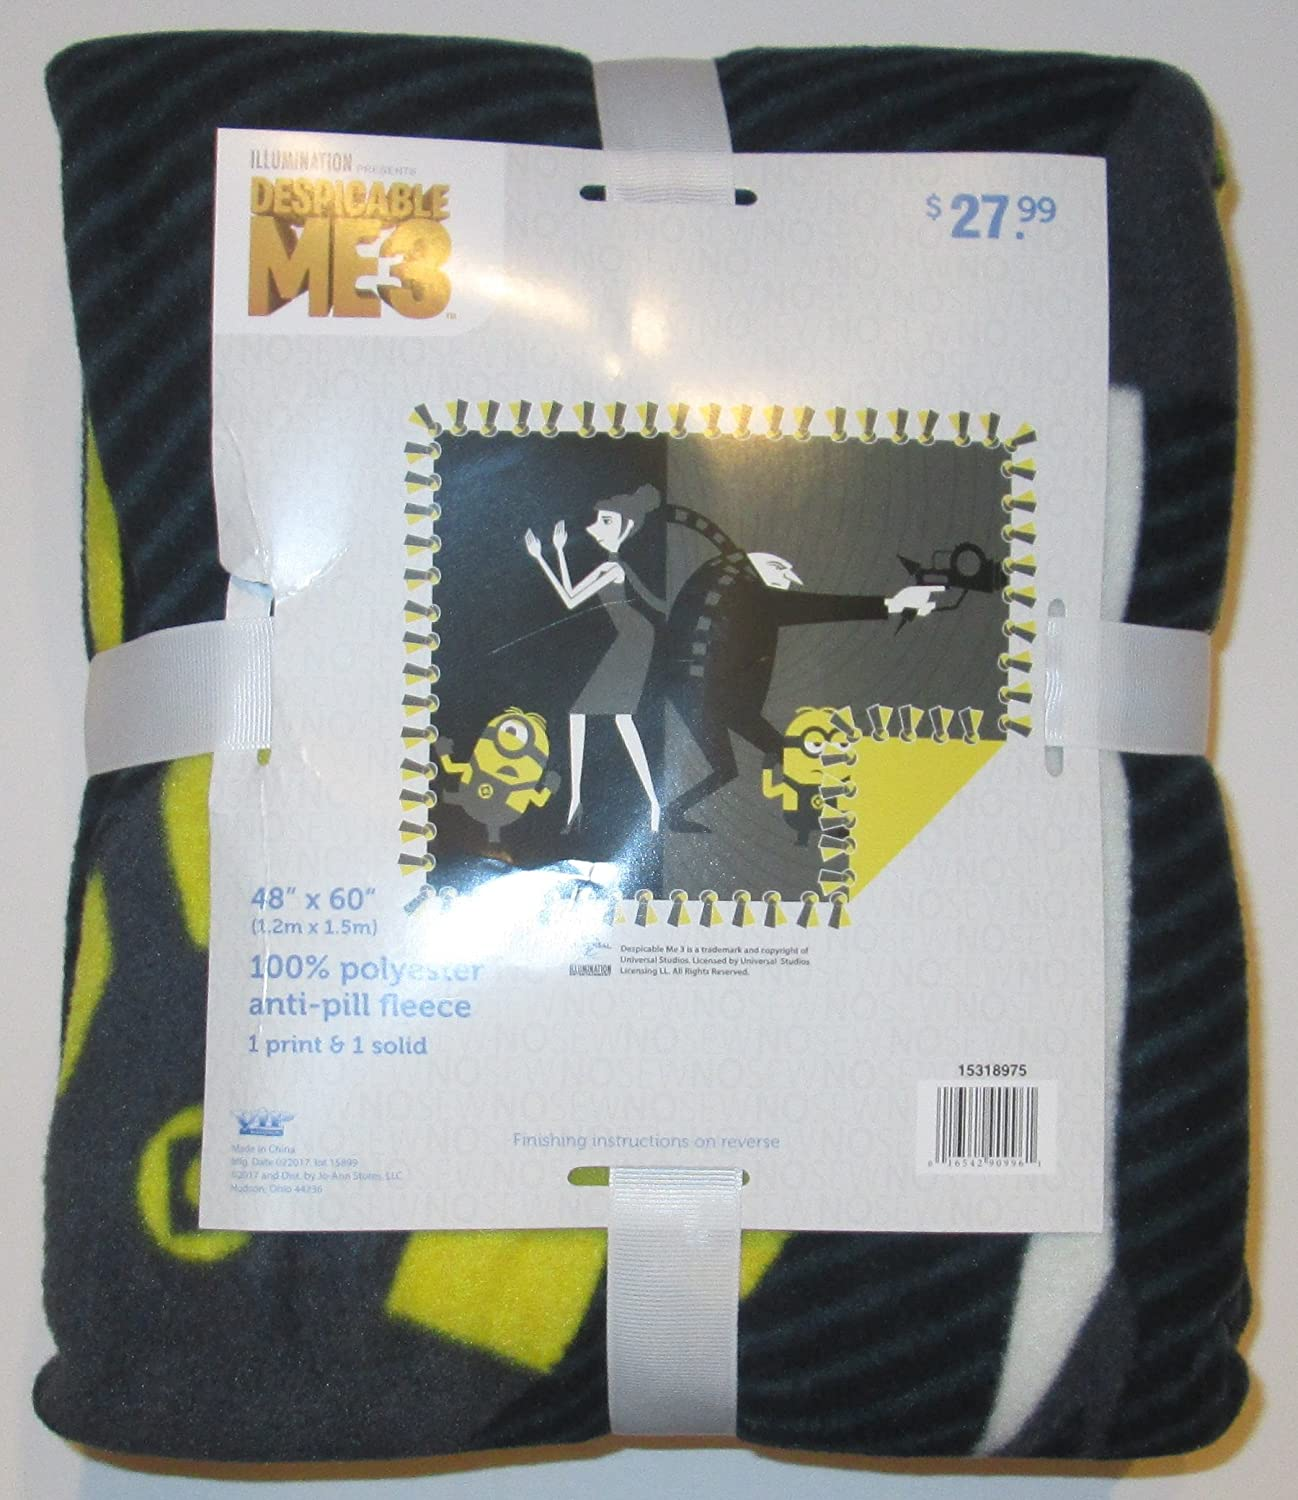 Despicable Me 3 - No Sew Throw Fleece Kit - finished size 43 x 55 VIP